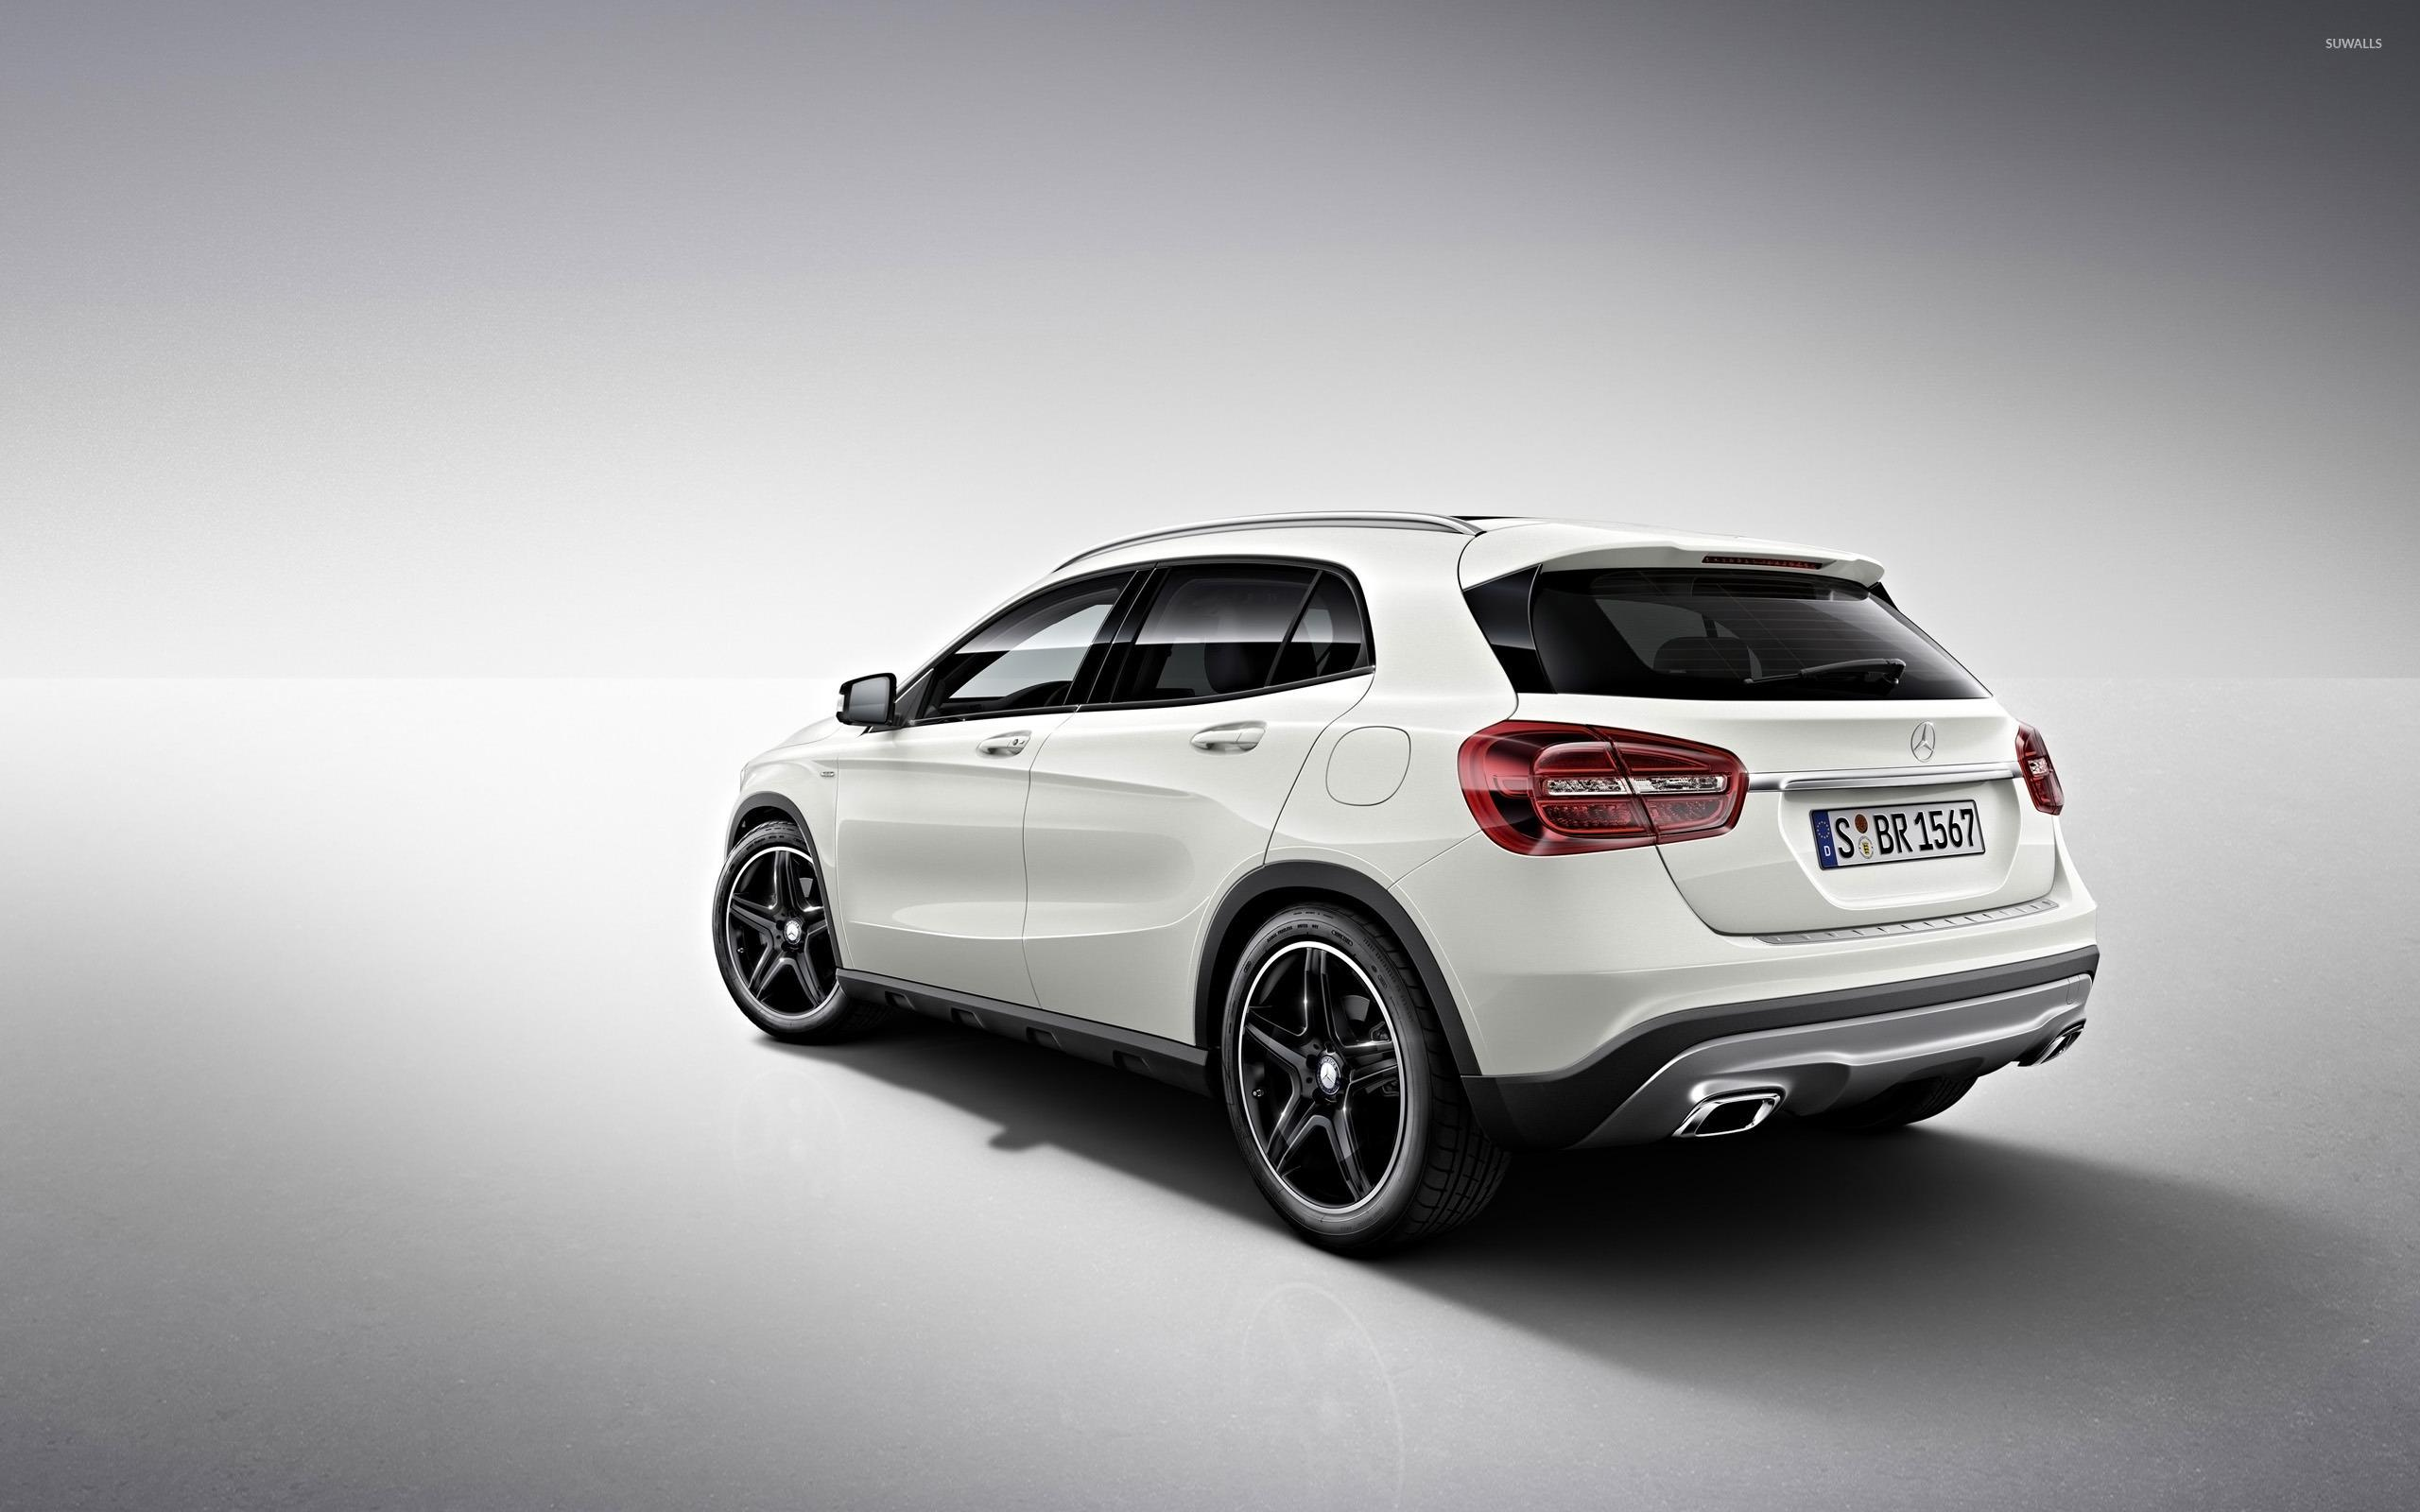 2014 Mercedes-Benz GLA [3] wallpaper - Car wallpapers - #24984